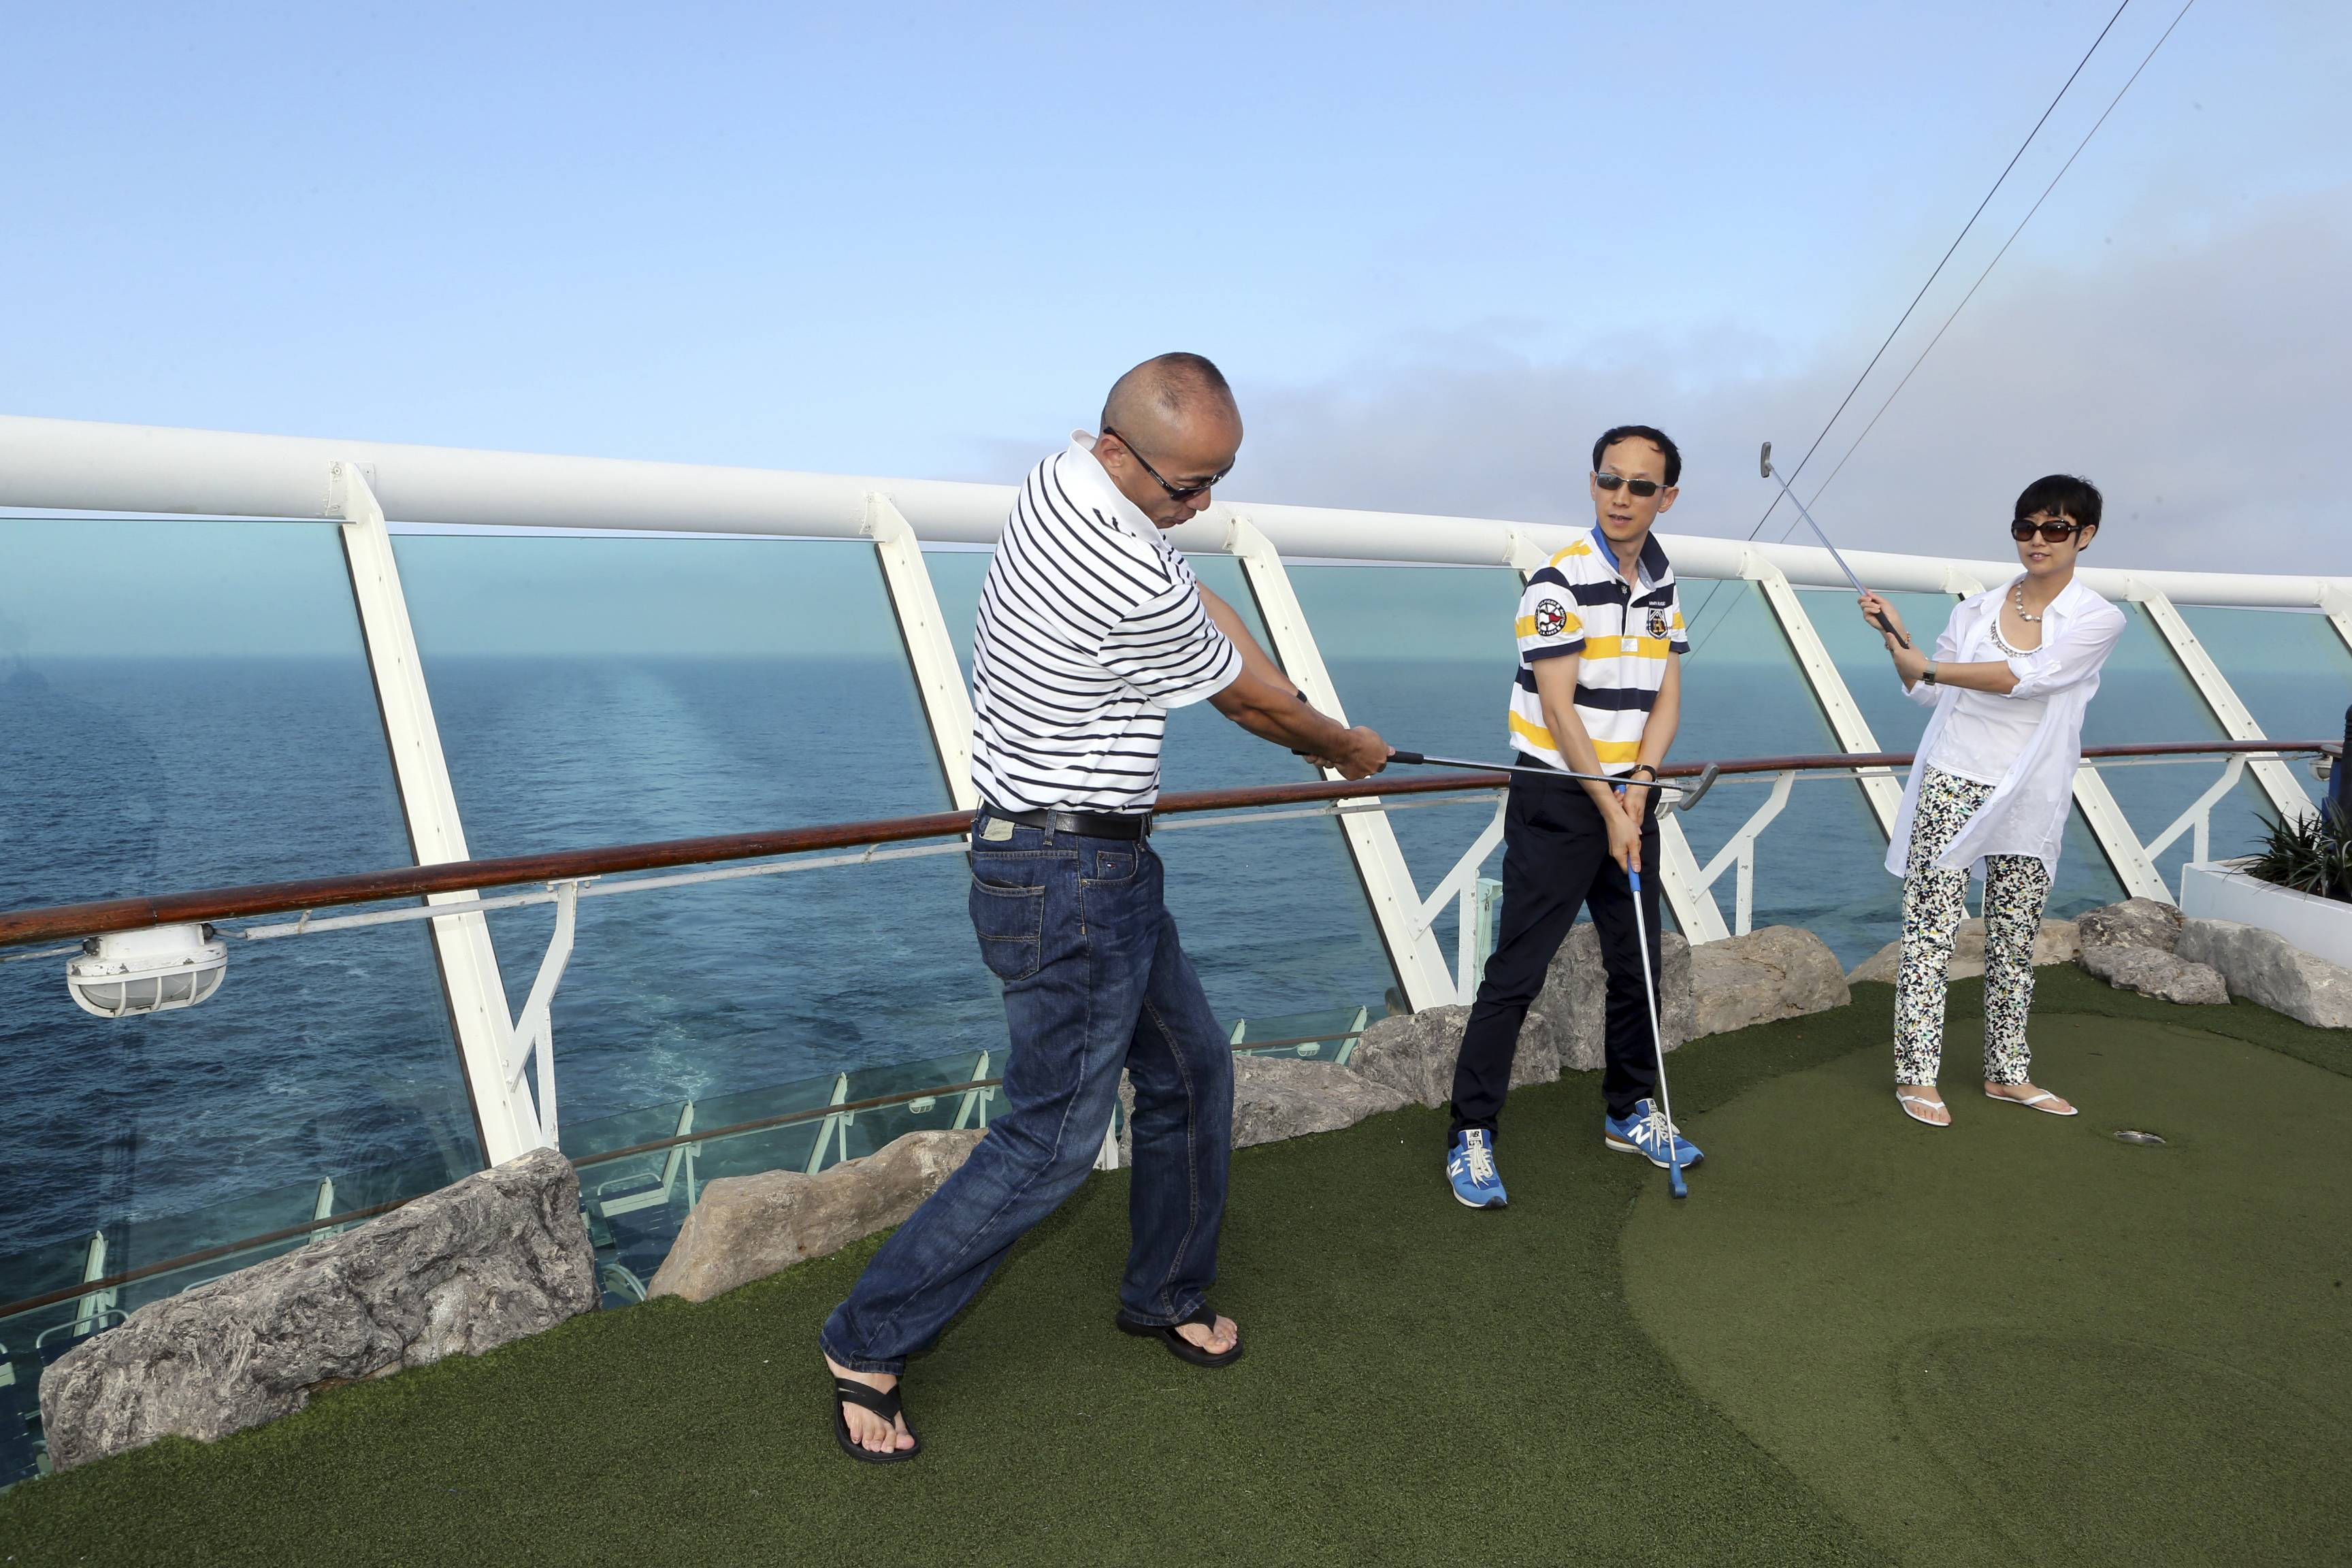 Chinese tourists play mini golf on the Royal Caribbean cruise ship Mariner of the Seas during her voyage from Shanghai, China, to Jeju, South Korea. The race for China underscores the growing strength of the leisure and travel industries in the world's No. 2 economy as authorities try to spur domestic spending rather than trade and investment as an engine of growth.